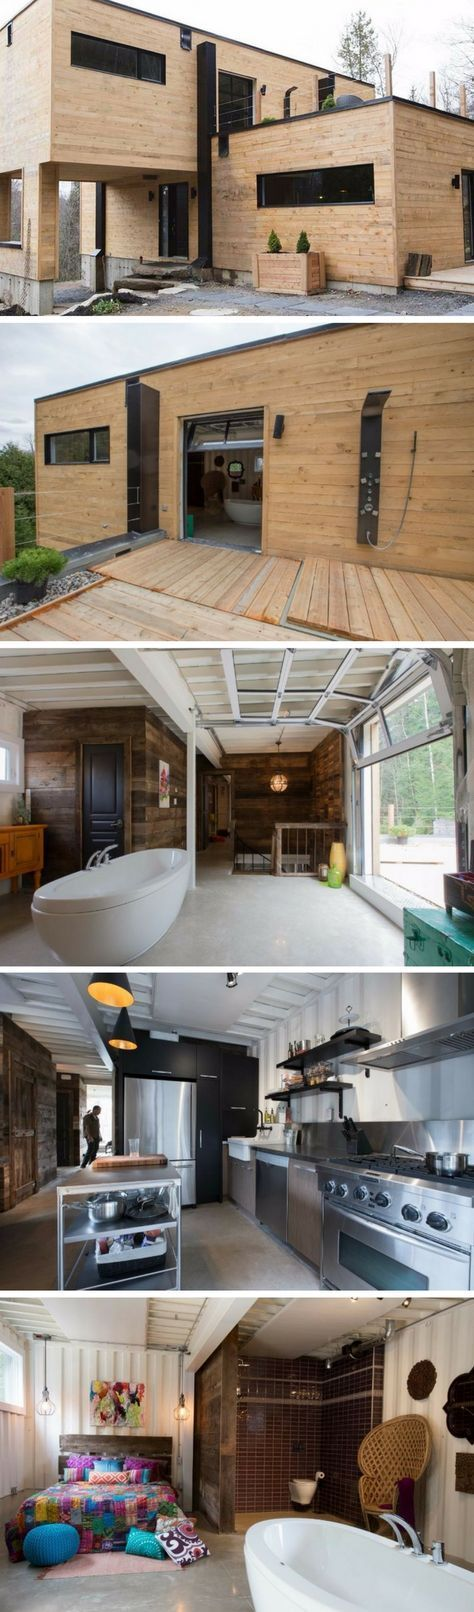 312 best Conteneurs images on Pinterest Architecture, Projects and - idee entree de maison